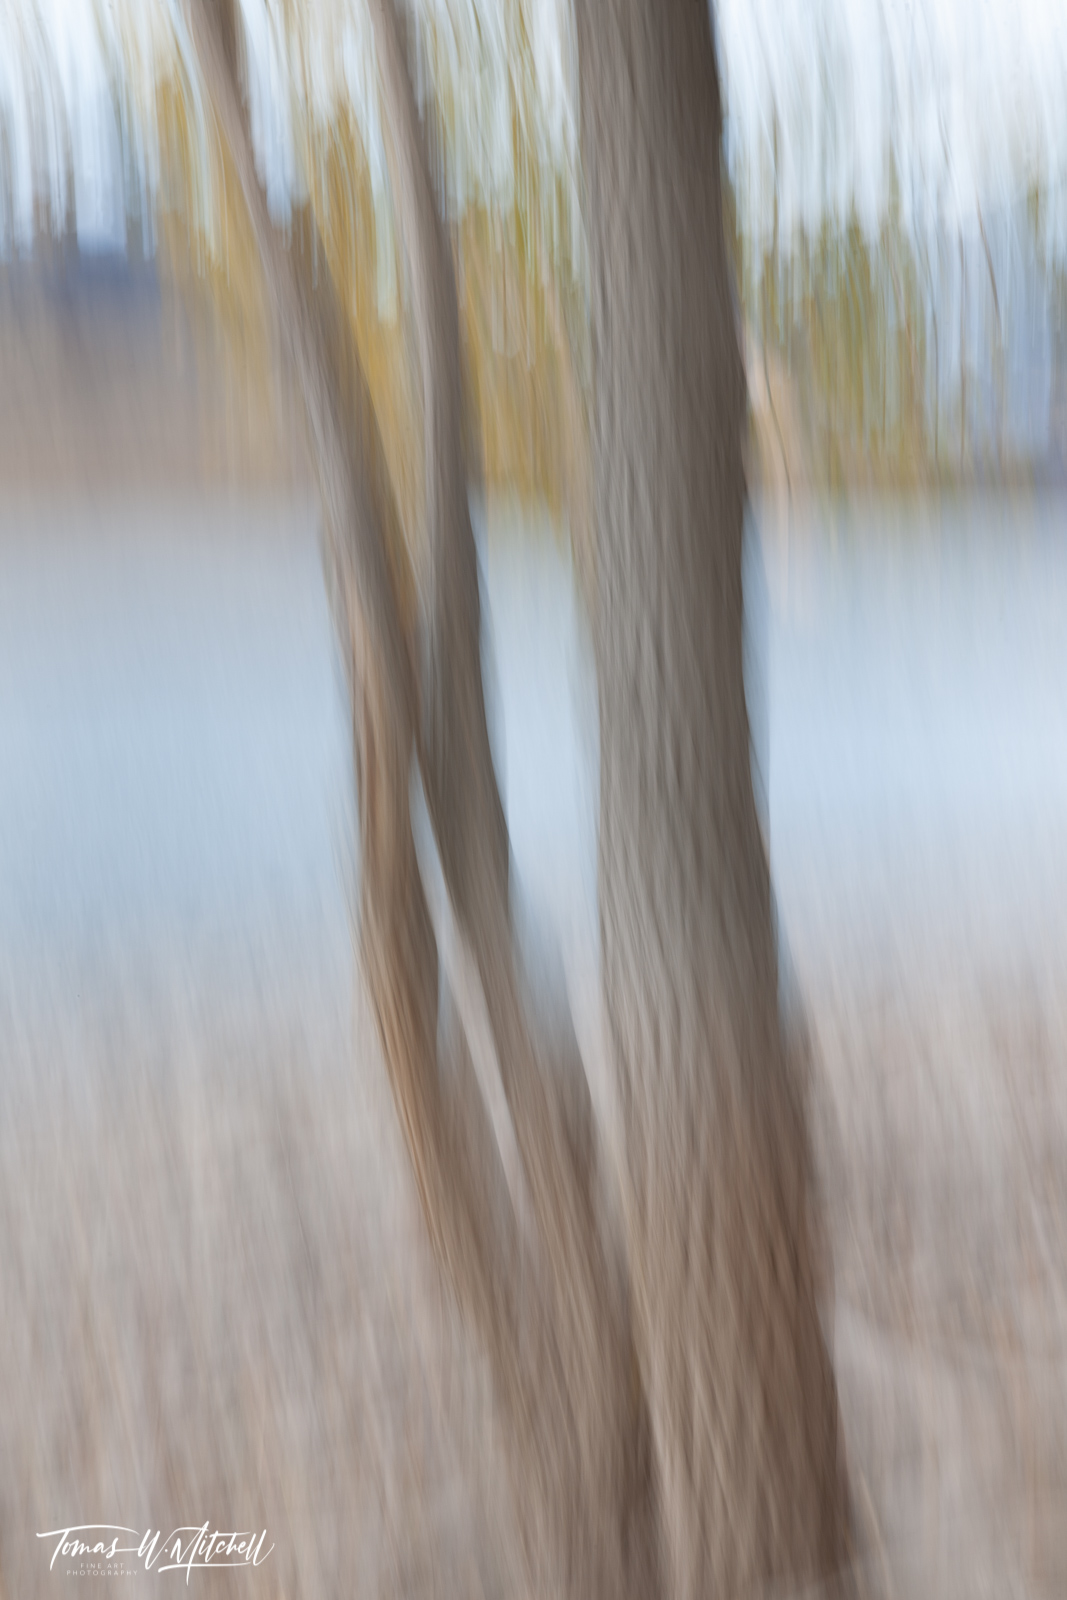 limited edition, fine art, prints, deer creek reservoir, utah, pastels, photograph, grayish, brown, shoreline, blue water, tree trunks, yellowish, green leaves, mountains, trees, abstract, photo